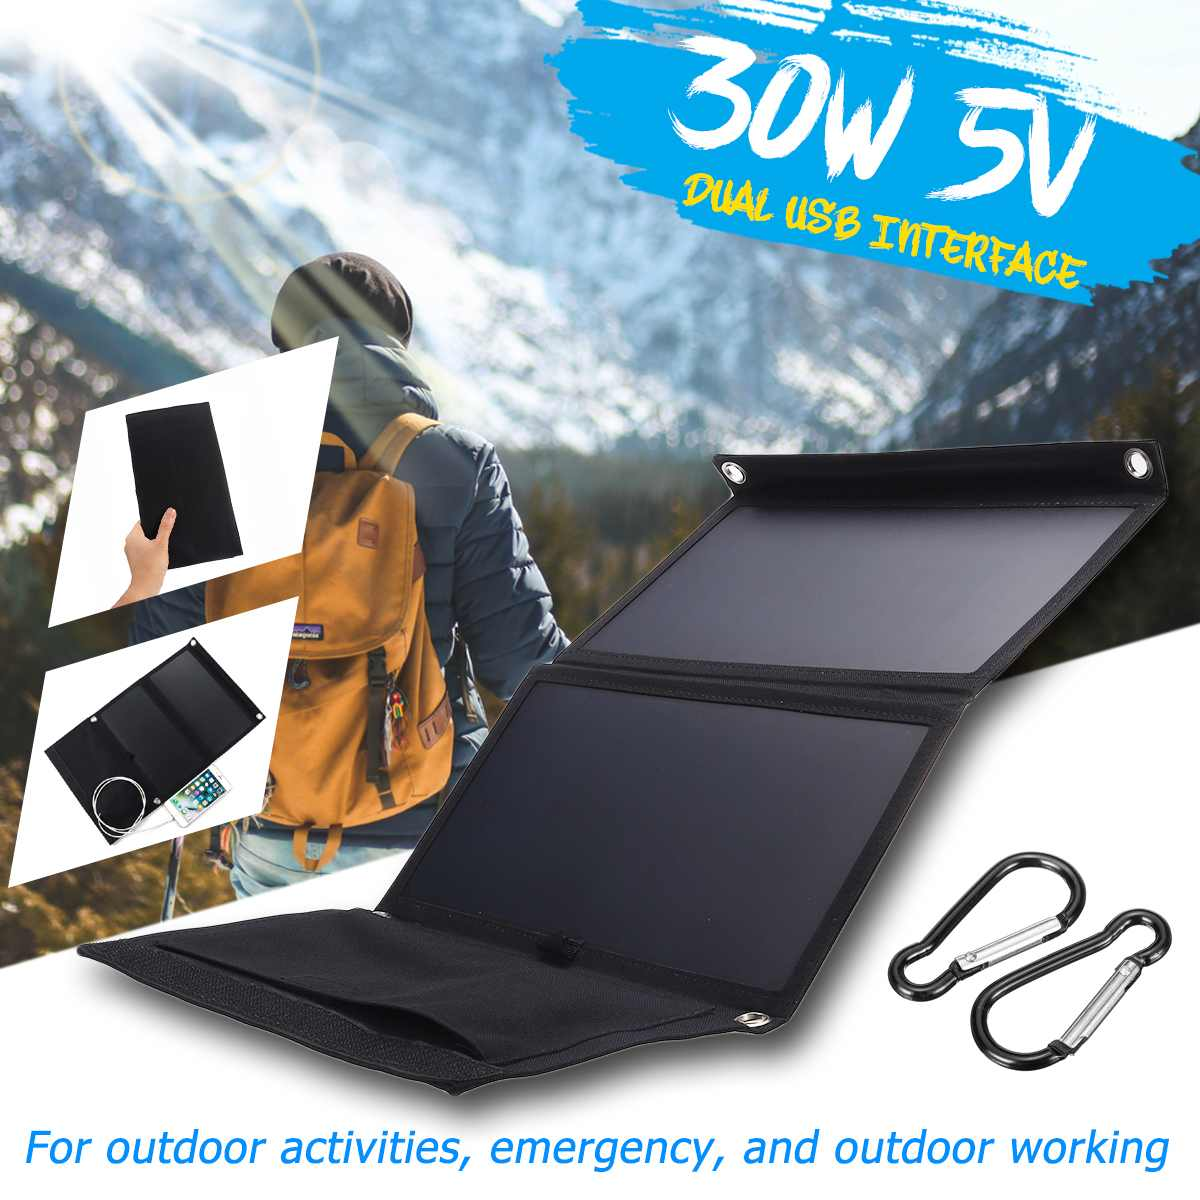 Hot Sales Sunpower 30W 5V Foldable Solar Panel Charger Solar Power Bank Dual USB Camouflage Backpack Camping Hiking for phone image